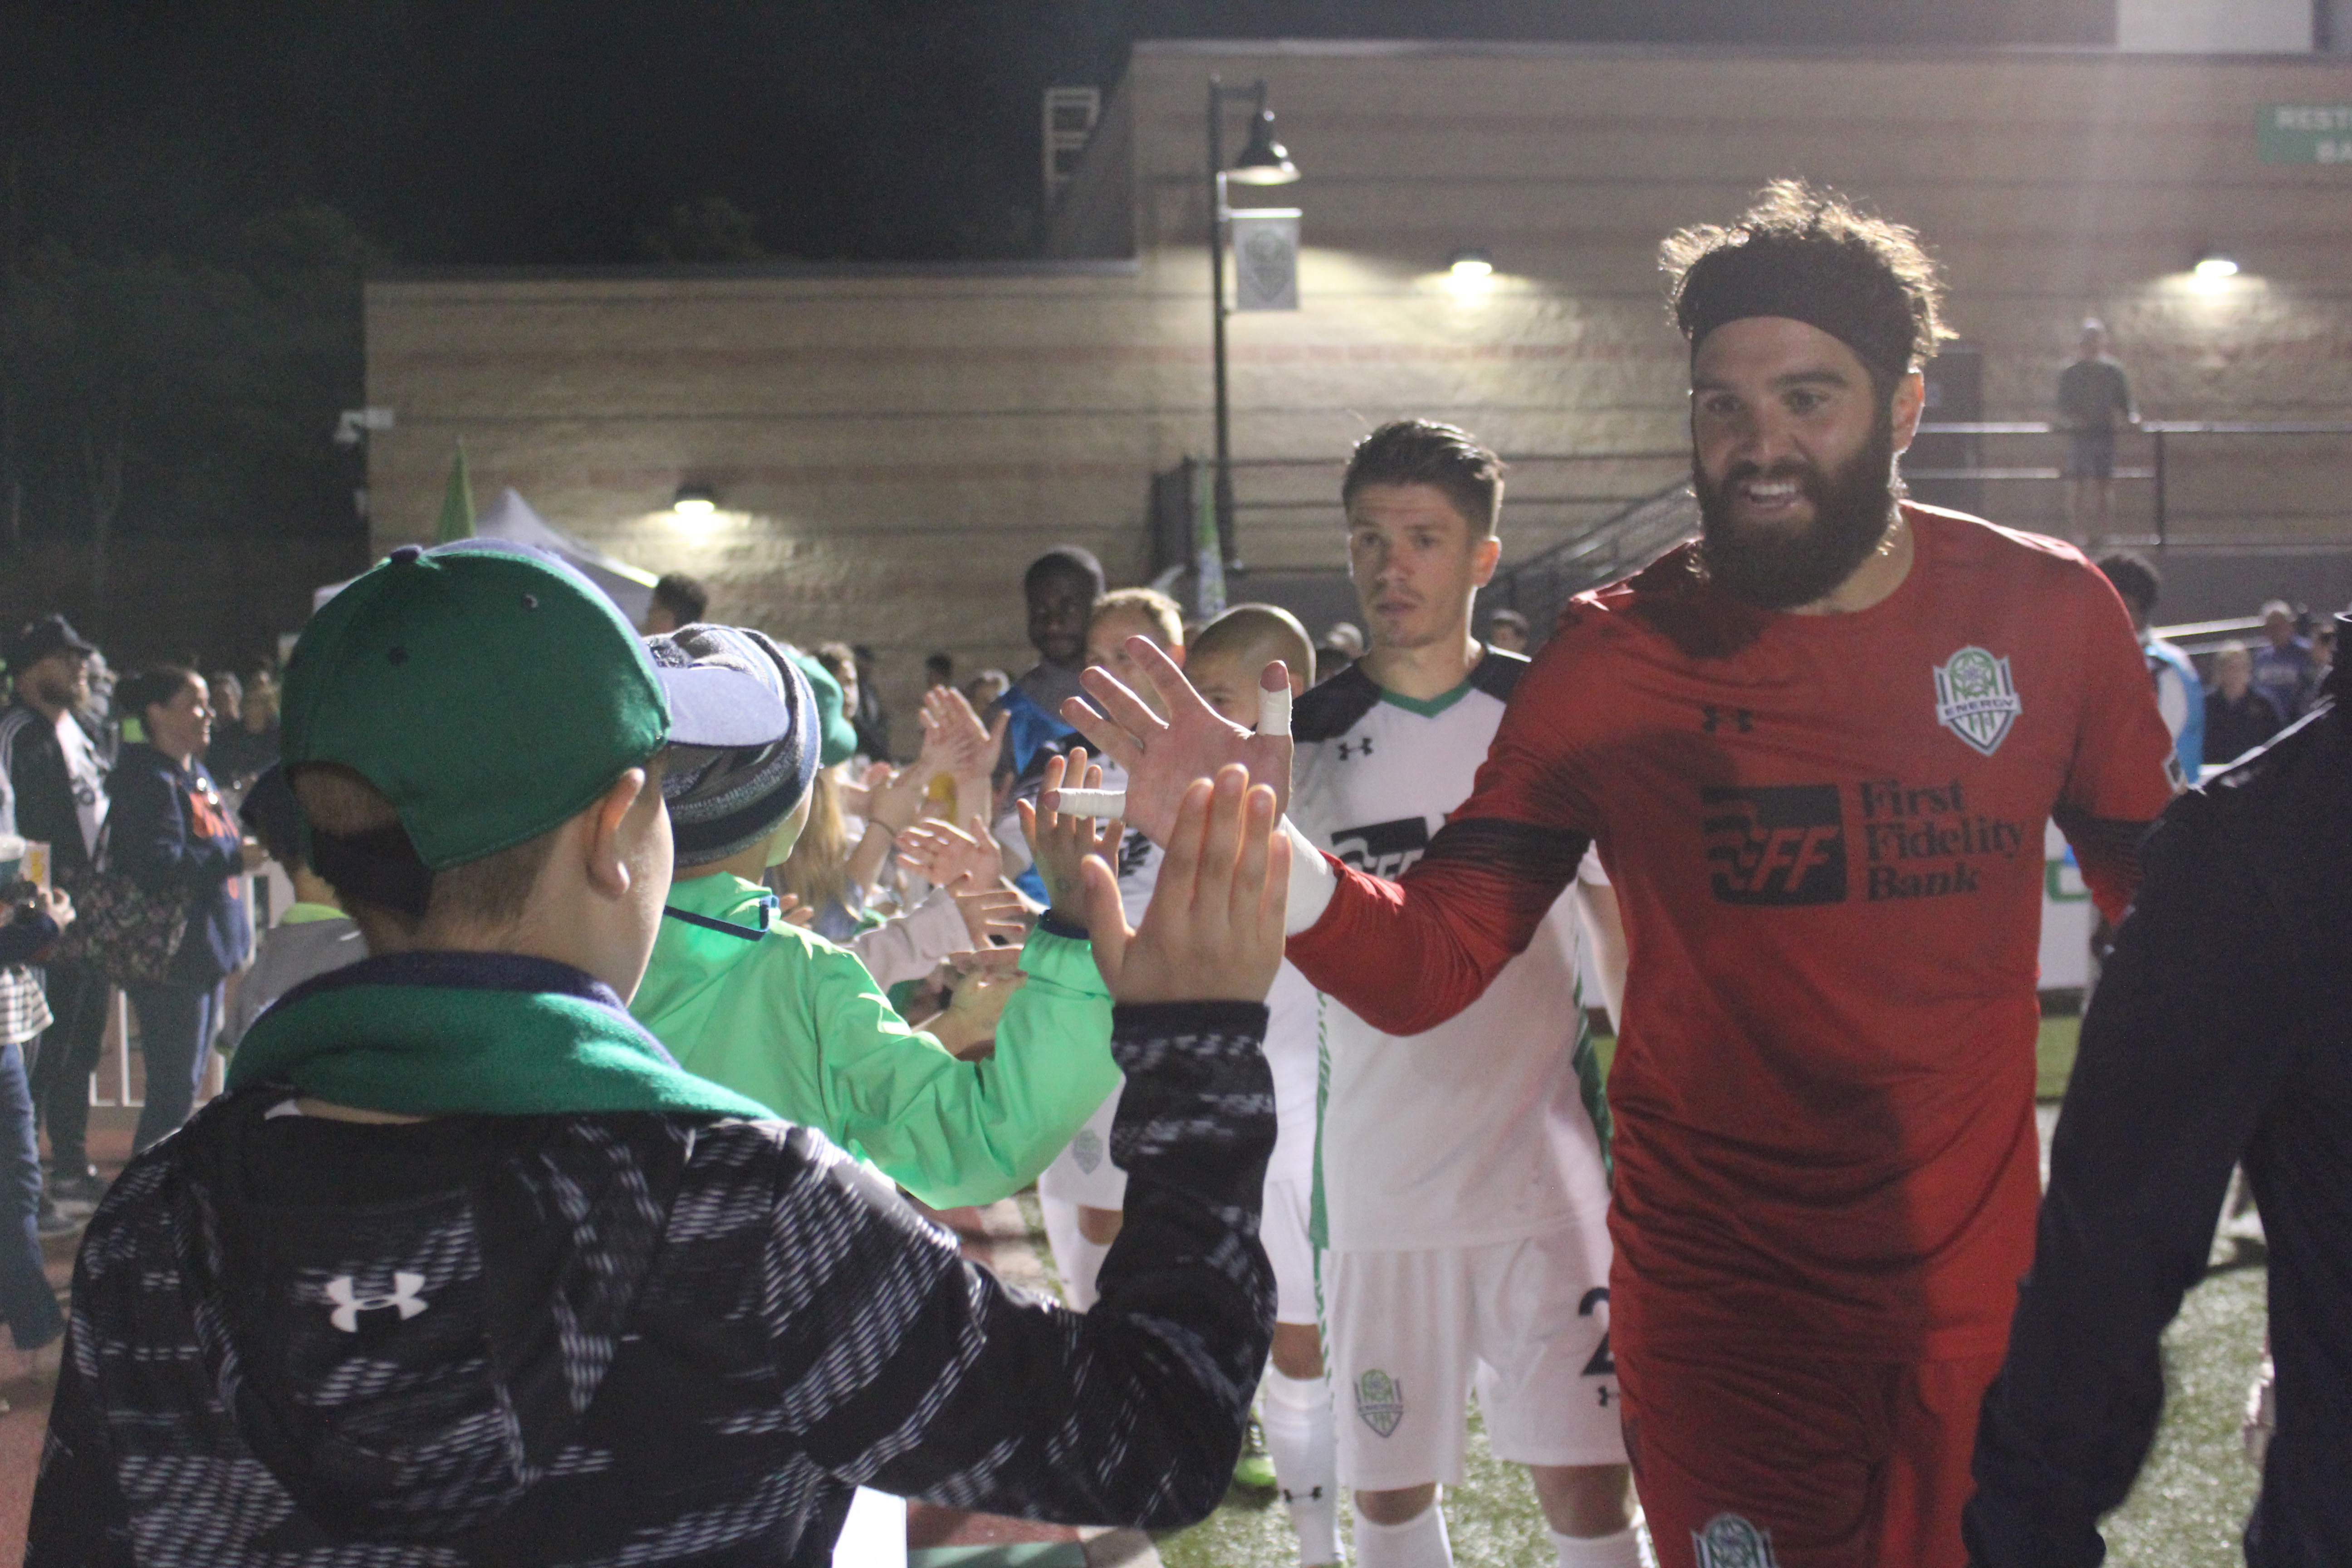 Energy FC Win Second Straight, Shells Austin Bold FC 4-2